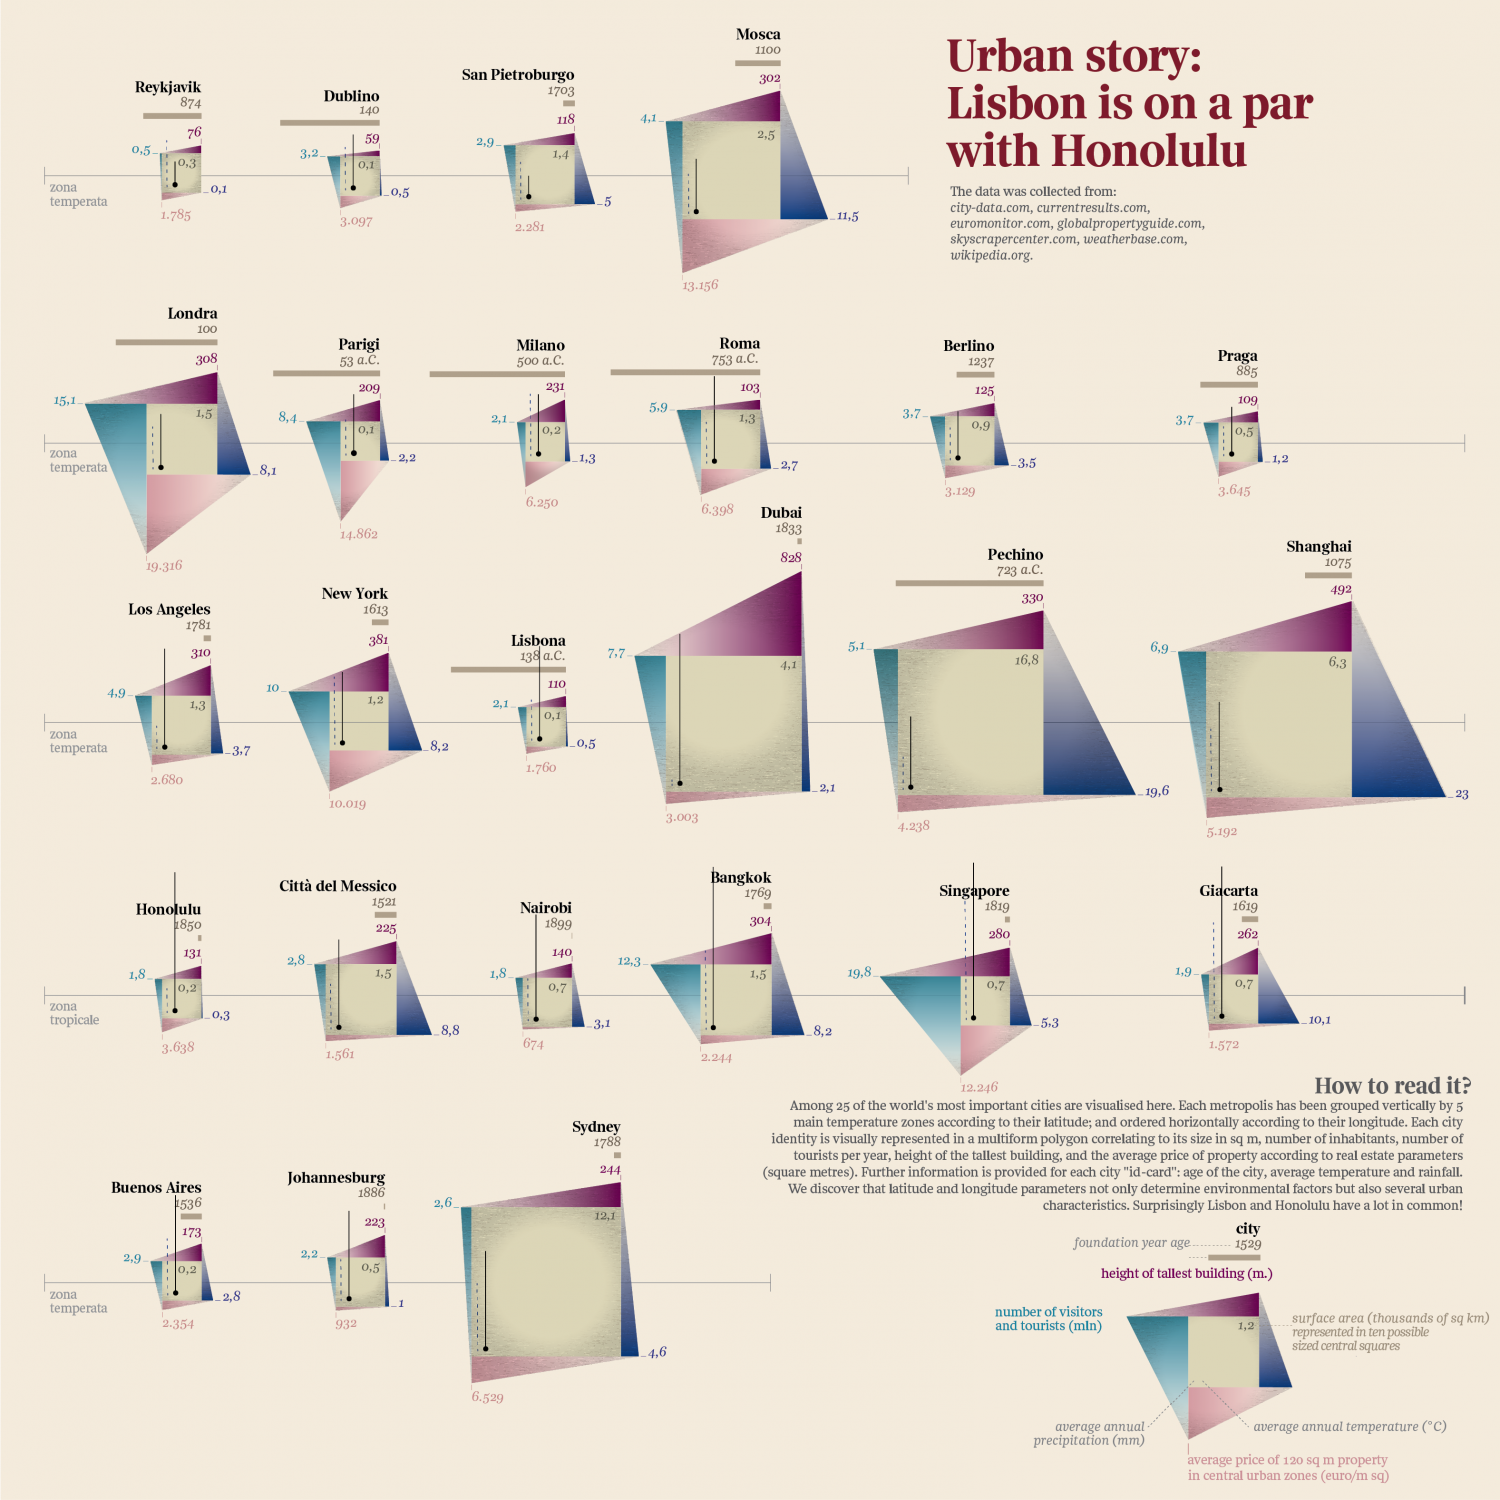 Urban story: Lisbon is on a par with Honolulu (English) Infographic